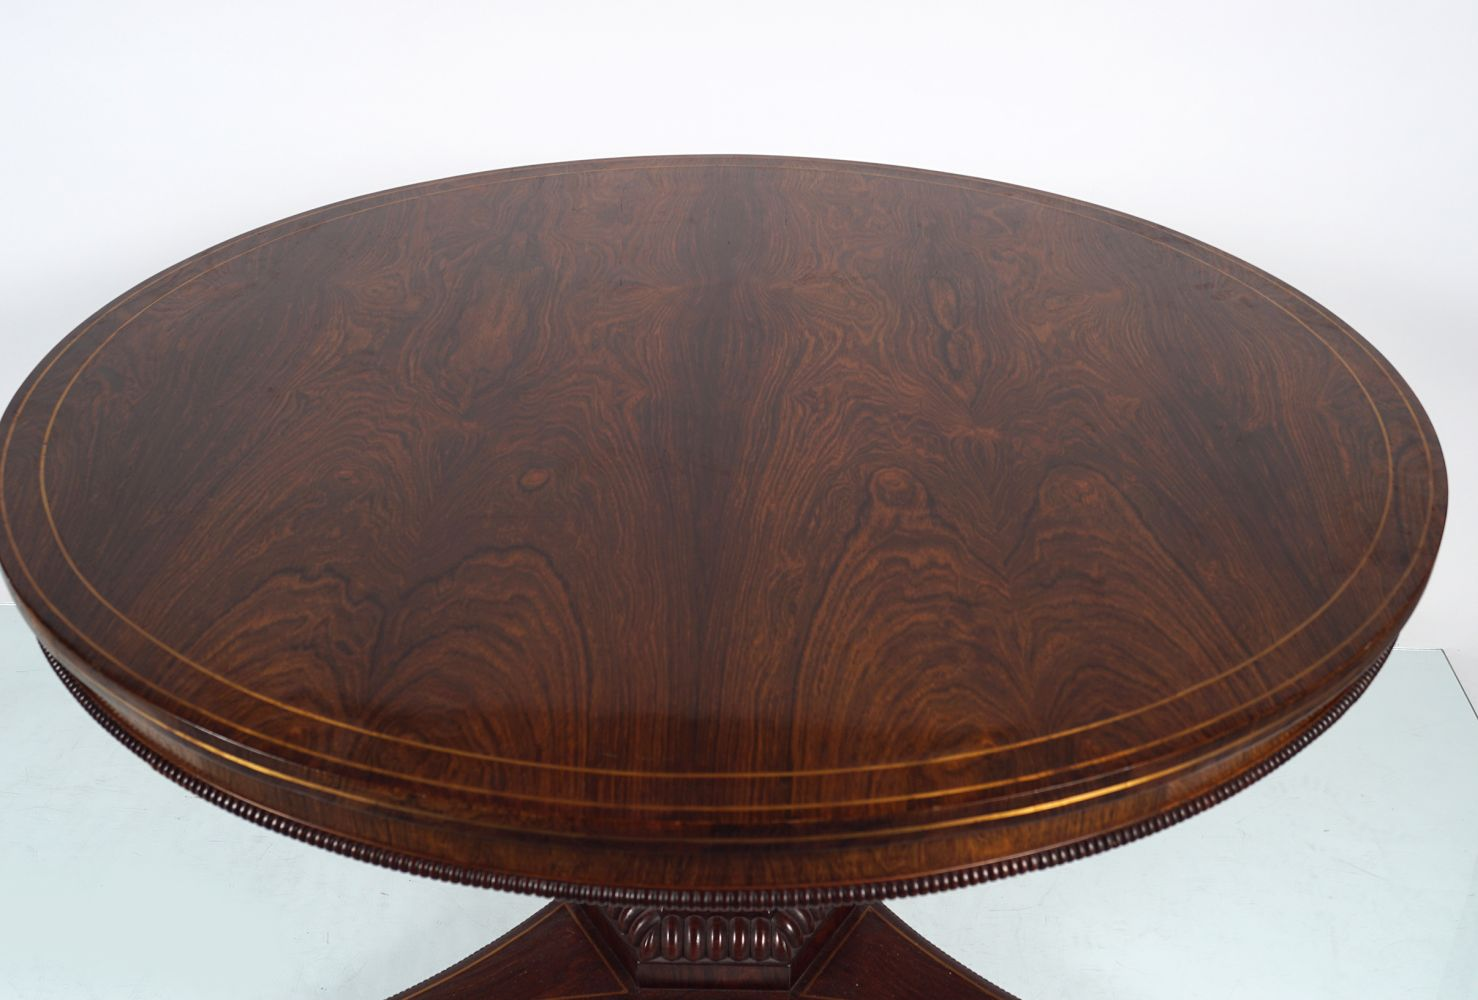 REGENCY ROSEWOOD AND BRASS INLAID CENTRE TABLE - Image 3 of 4